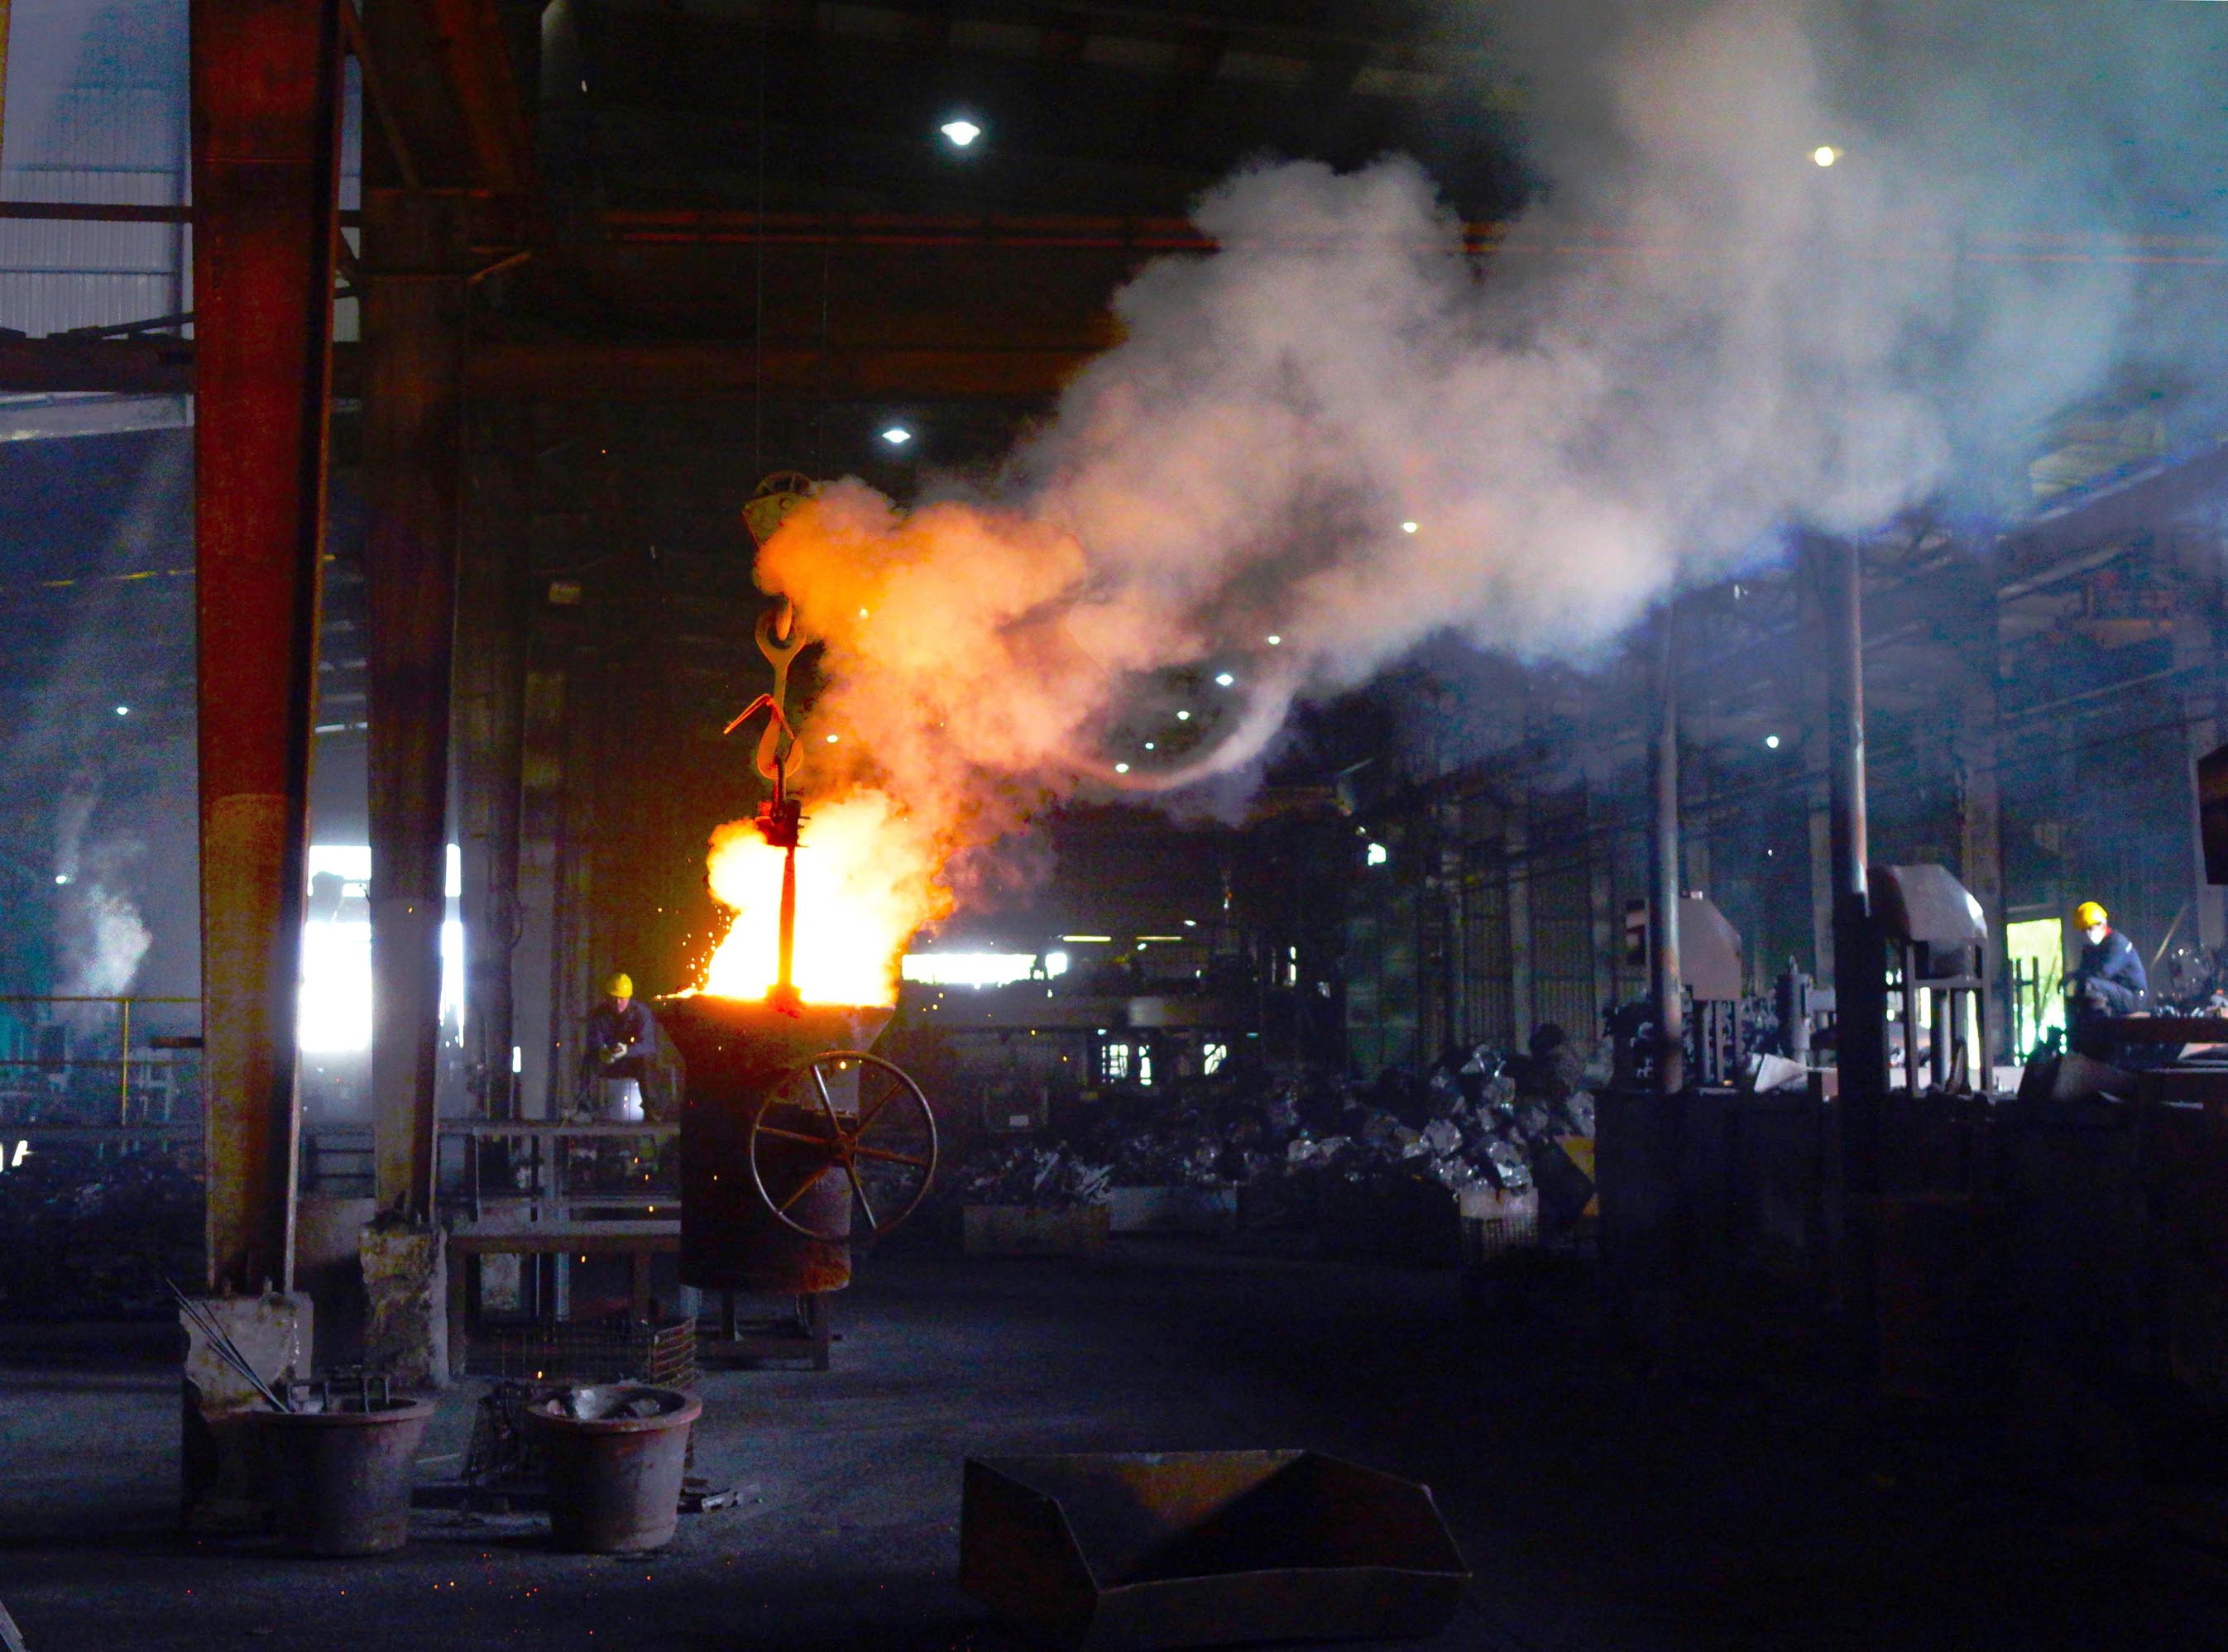 Trending News Corona impact on Precision Casting Market Business Opportunities, Current Trends and Growth Forecasts by 2025 | Alcoa, Precision Castparts, CIREX